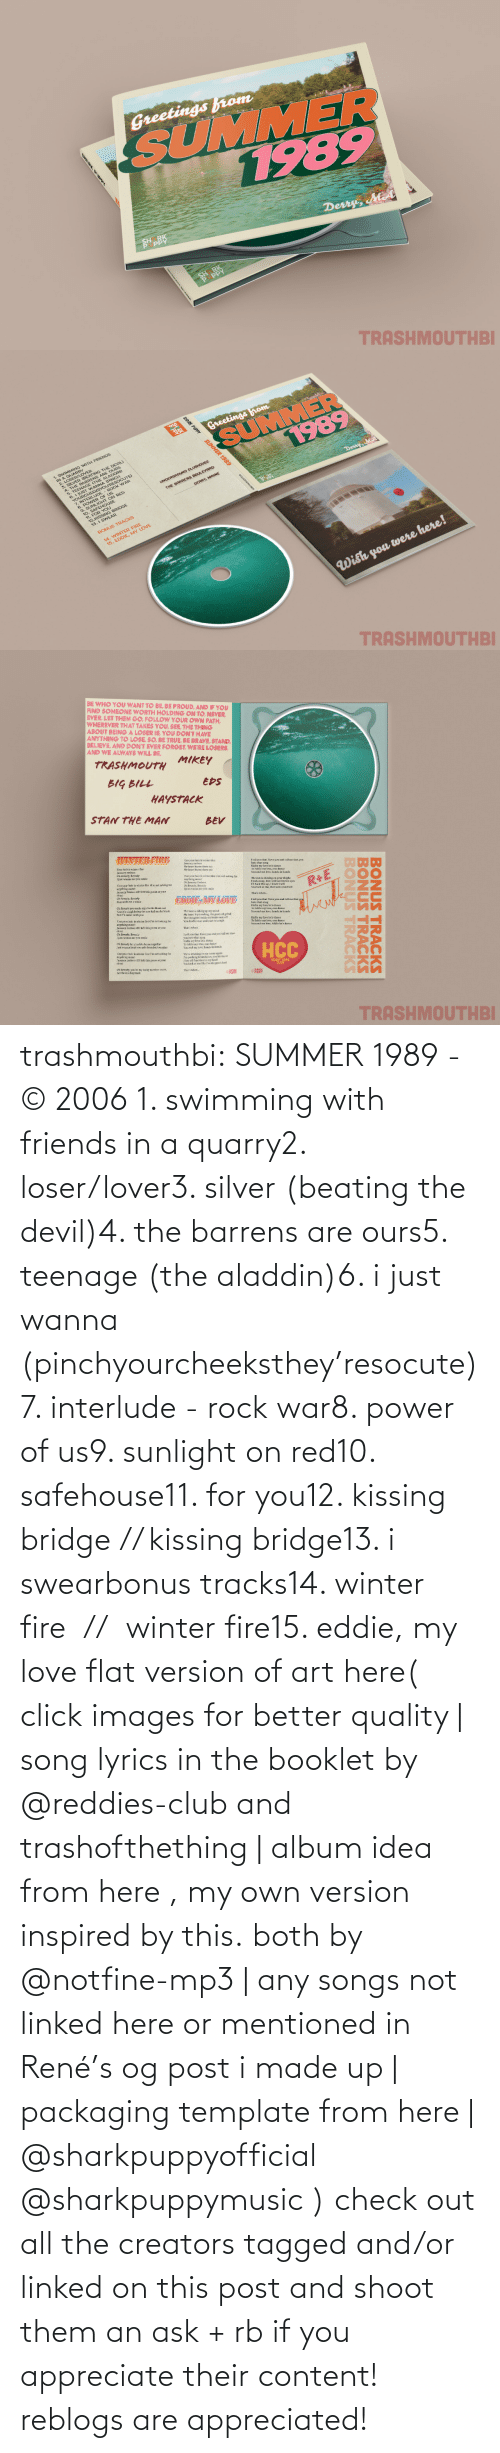 goodnight: trashmouthbi: SUMMER 1989 - © 2006 1. swimming with friends in a quarry2. loser/lover3. silver (beating the devil)4. the barrens are ours5. teenage (the aladdin)6. i just wanna (pinchyourcheeksthey'resocute)7. interlude - rock war8. power of us9. sunlight on red10. safehouse11. for you12. kissing bridge // kissing bridge13. i swearbonus tracks14. winter fire  //  winter fire15. eddie, my love flat version of art here( click images for better quality | song lyrics in the booklet by @reddies-club​ and trashofthething | album idea from here , my own version inspired by this. both by @notfine-mp3​ | any songs not linked here or mentioned in René's og post i made up | packaging template from here | @sharkpuppyofficial​ @sharkpuppymusic​ ) check out all the creators tagged and/or linked on this post and shoot them an ask + rb if you appreciate their content! reblogs are appreciated!